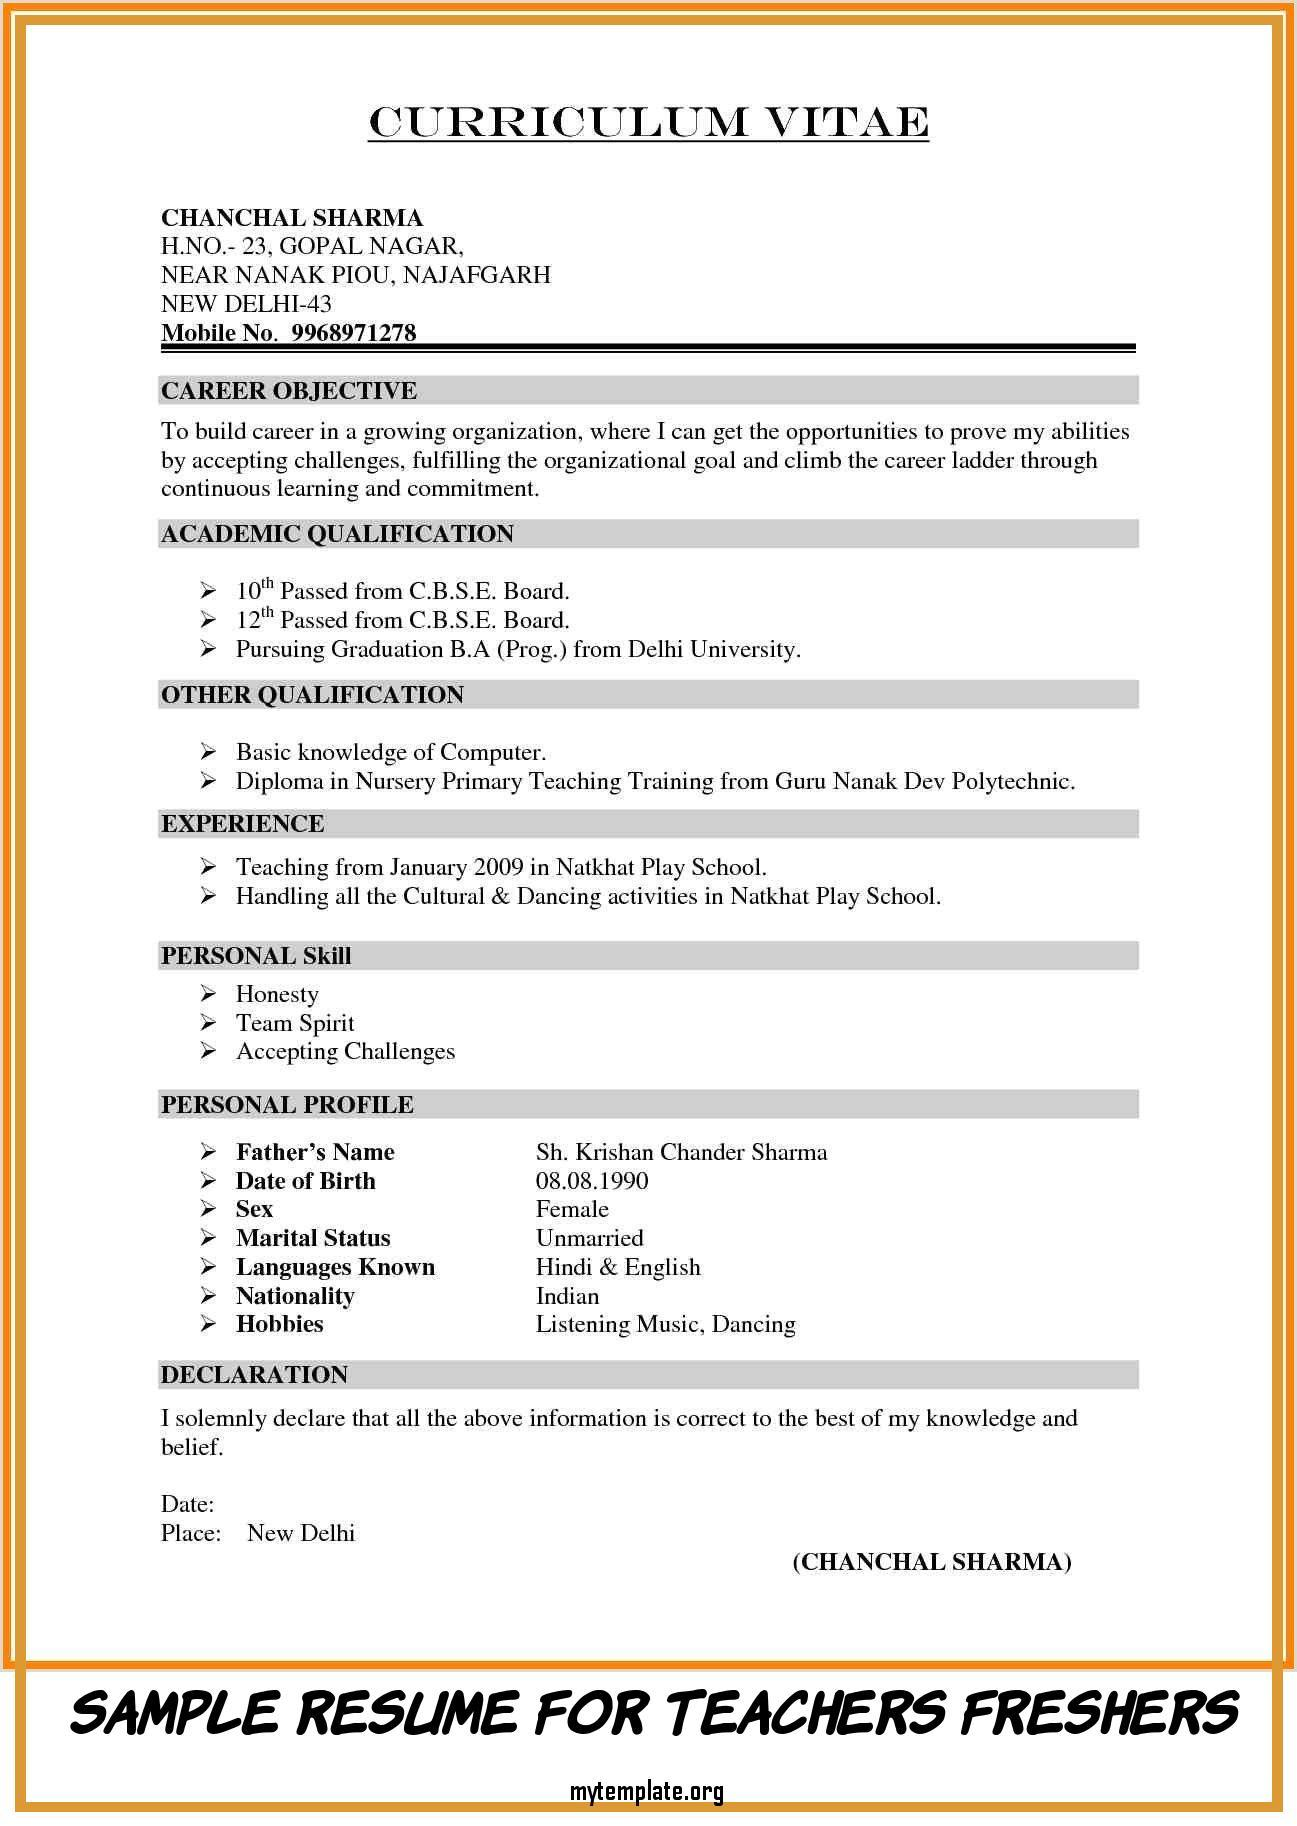 sample resume for teachers freshers free templates activities of format pin idq Resume Activities For Resume For Freshers